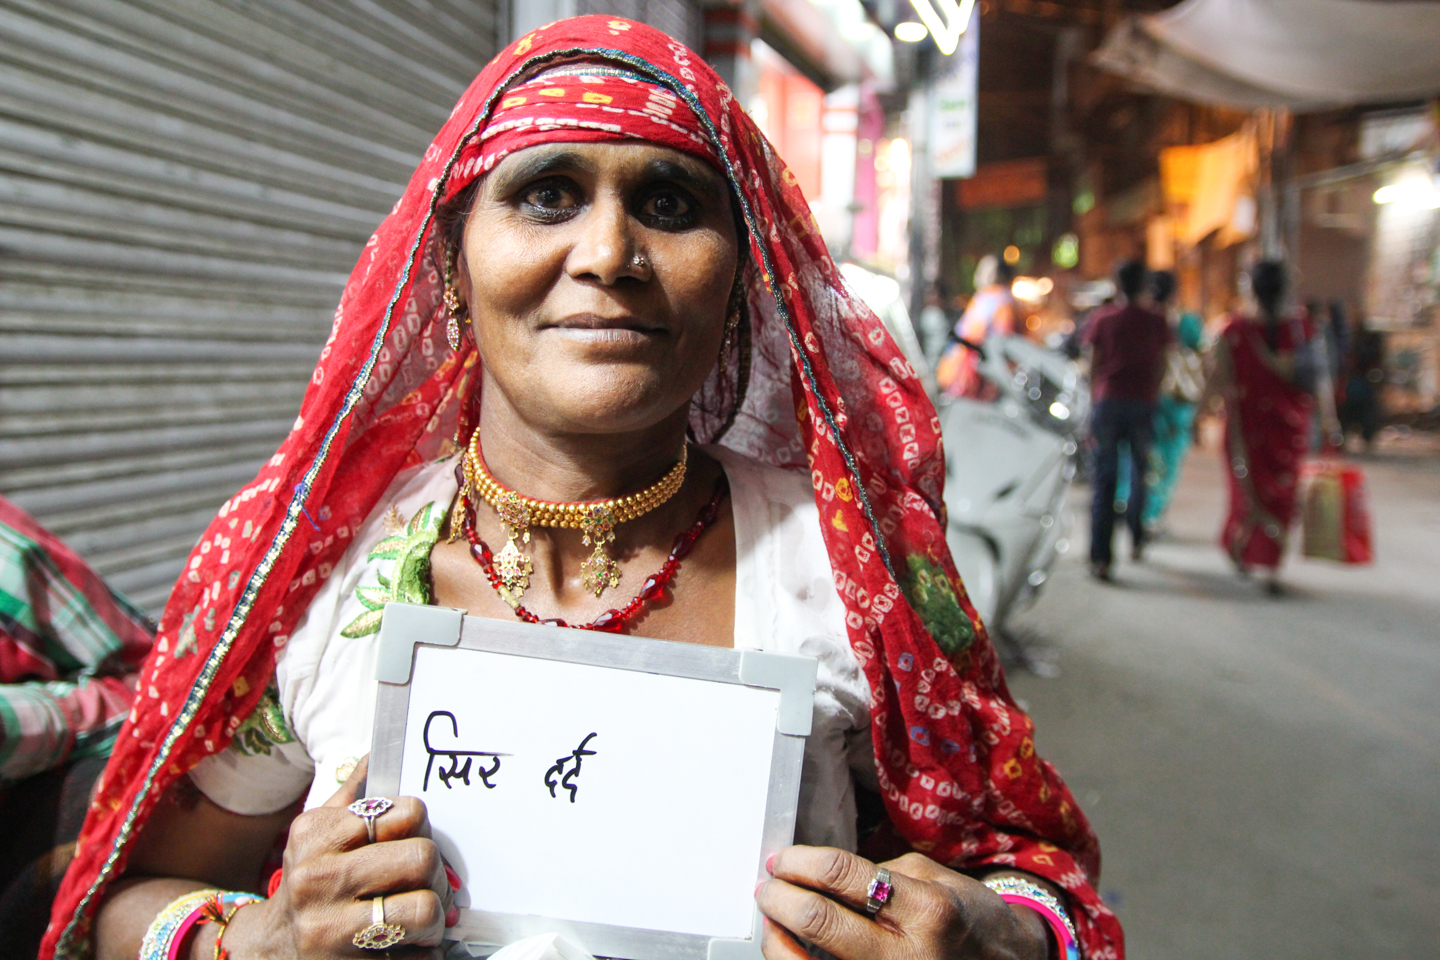 For Rukma Devi of Jodhpur, Rajasthan, chai is more than a drink - it also relieves her of her headaches.